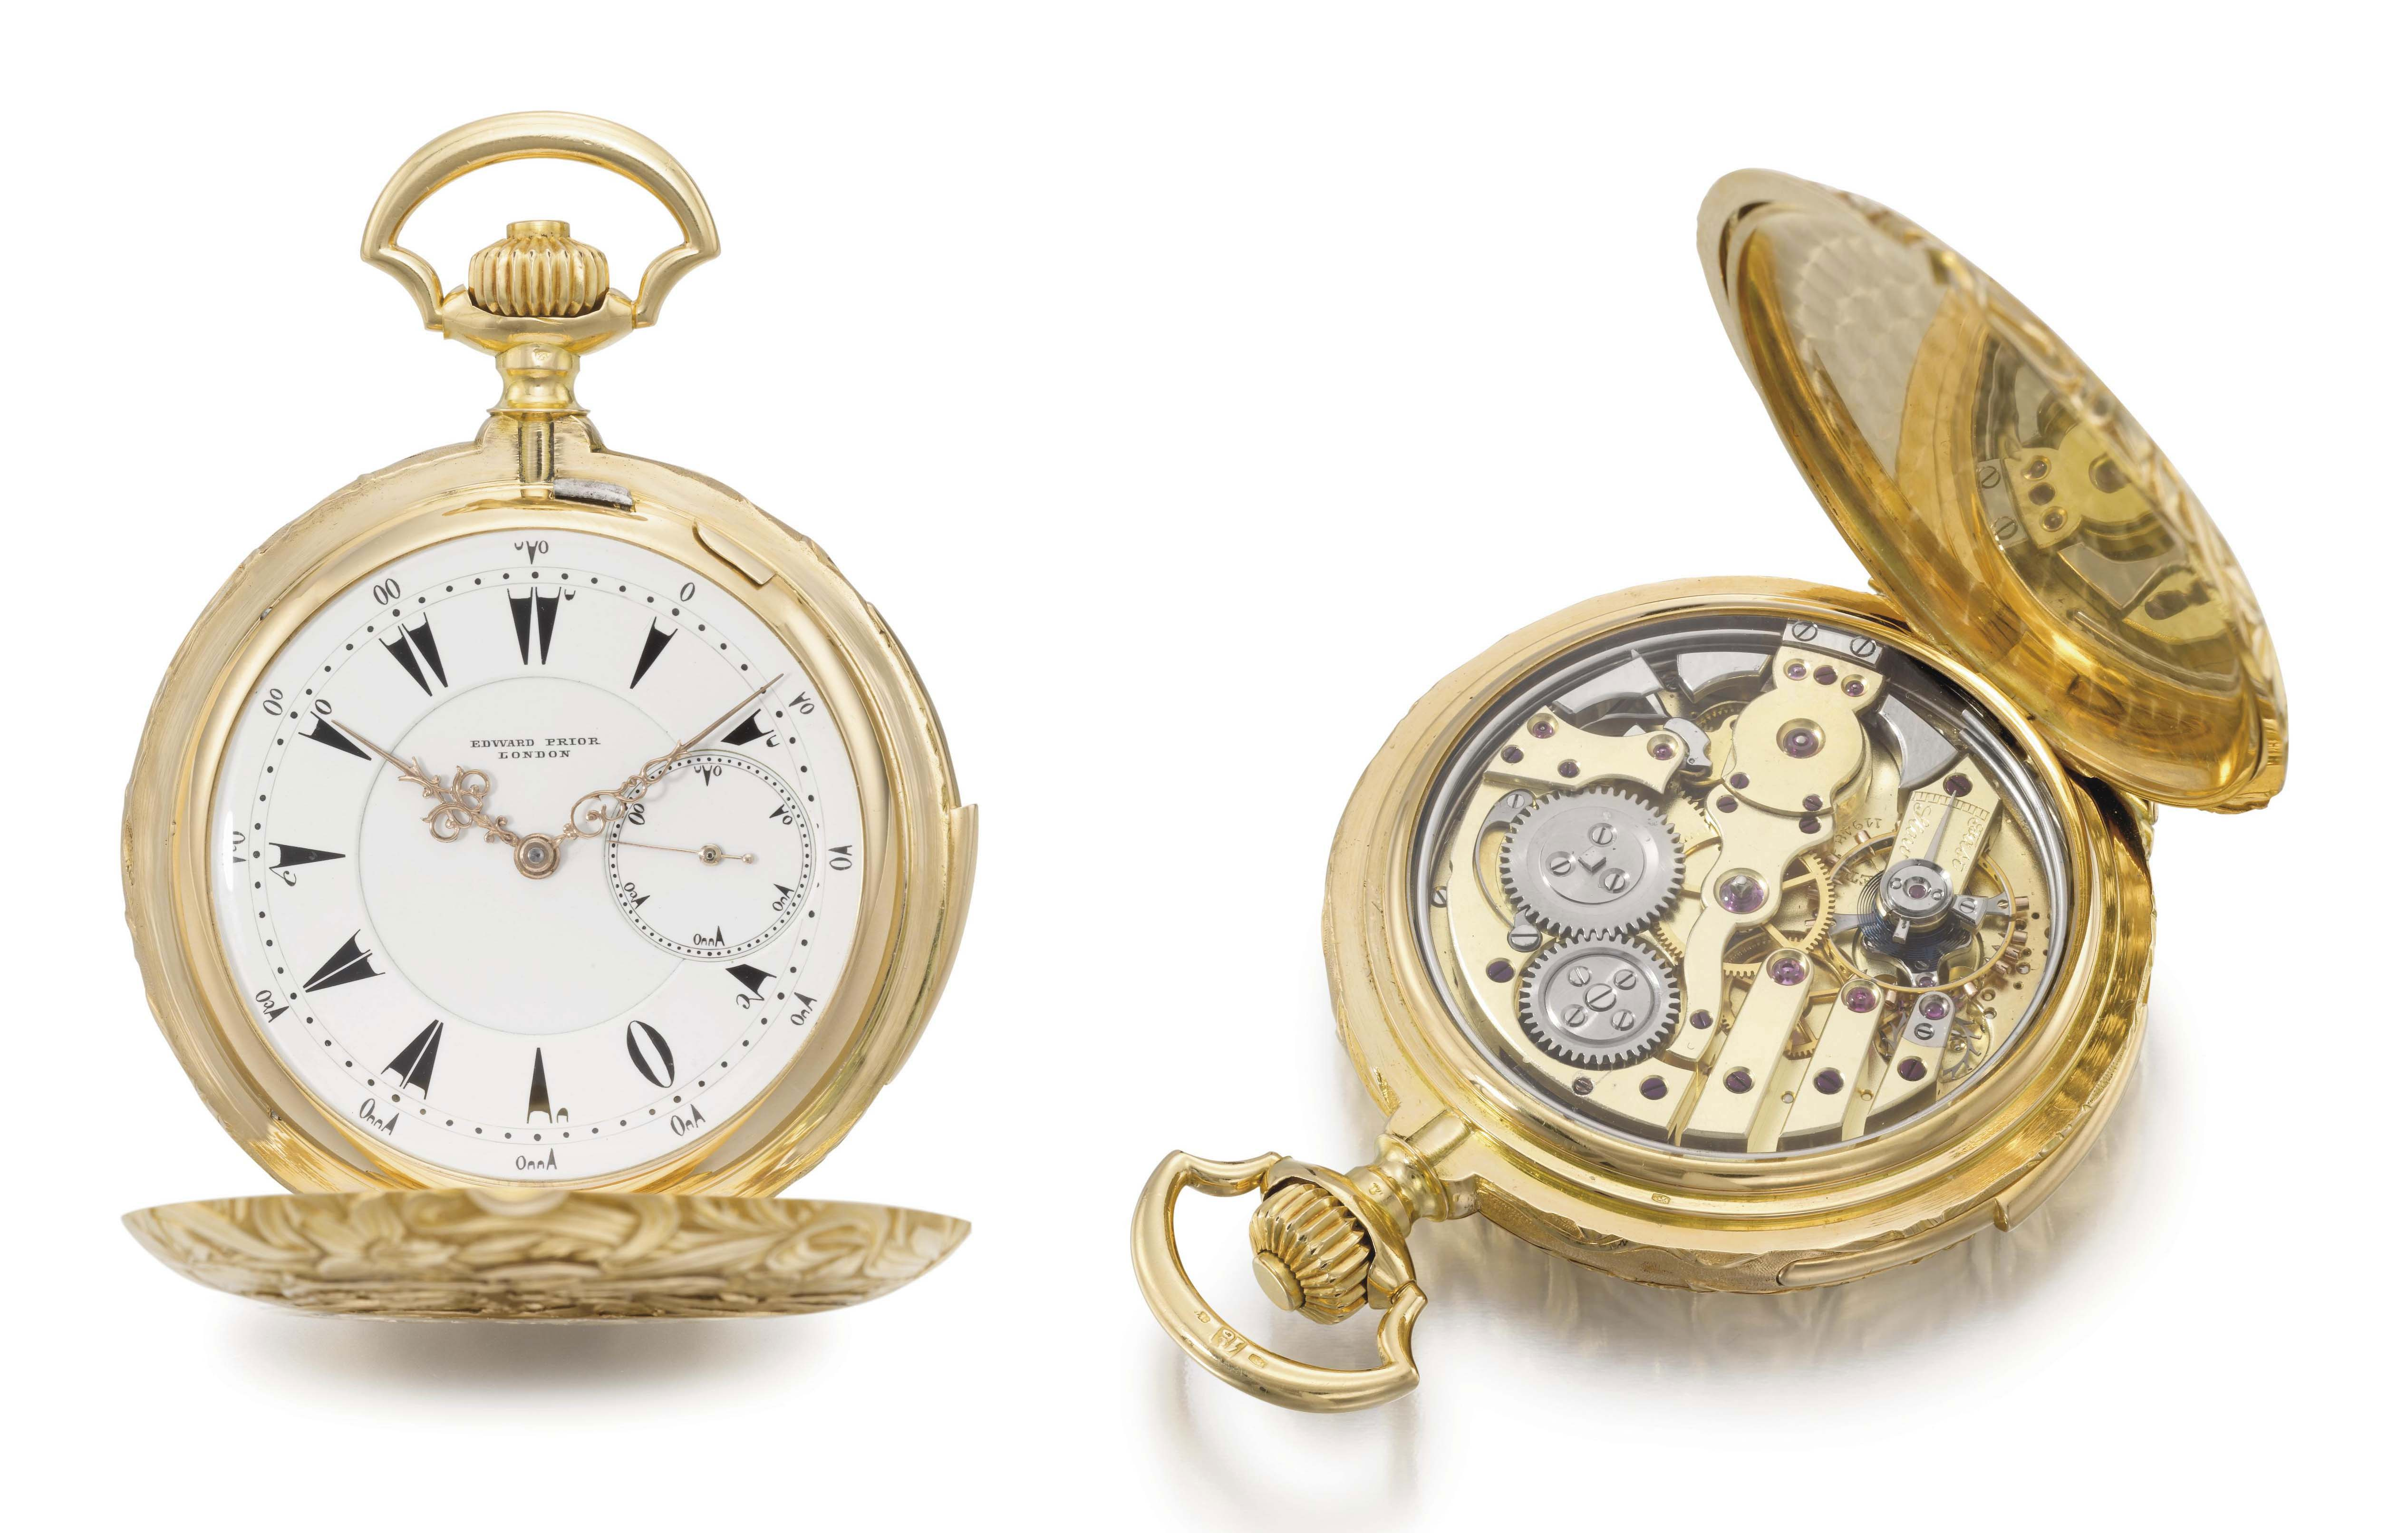 Constant Piguet, made for Edward Prior. A very fine, rare and heavy 18K gold hunter case minute repeating keyless lever watch with Piguet's patented Westminster Carillon chime on four hammers, made for the Turkish Market